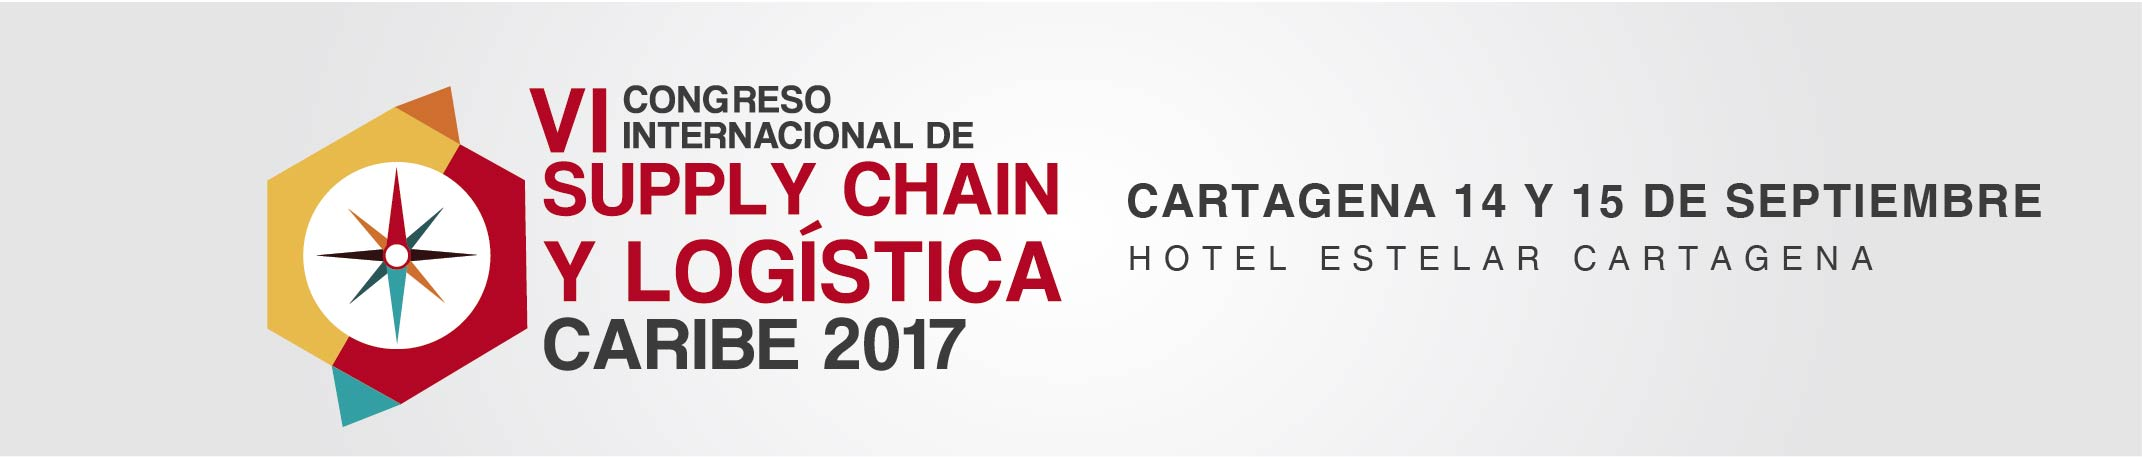 VI Congreso Internacional de Supply Chain y Logística Caribe 2017